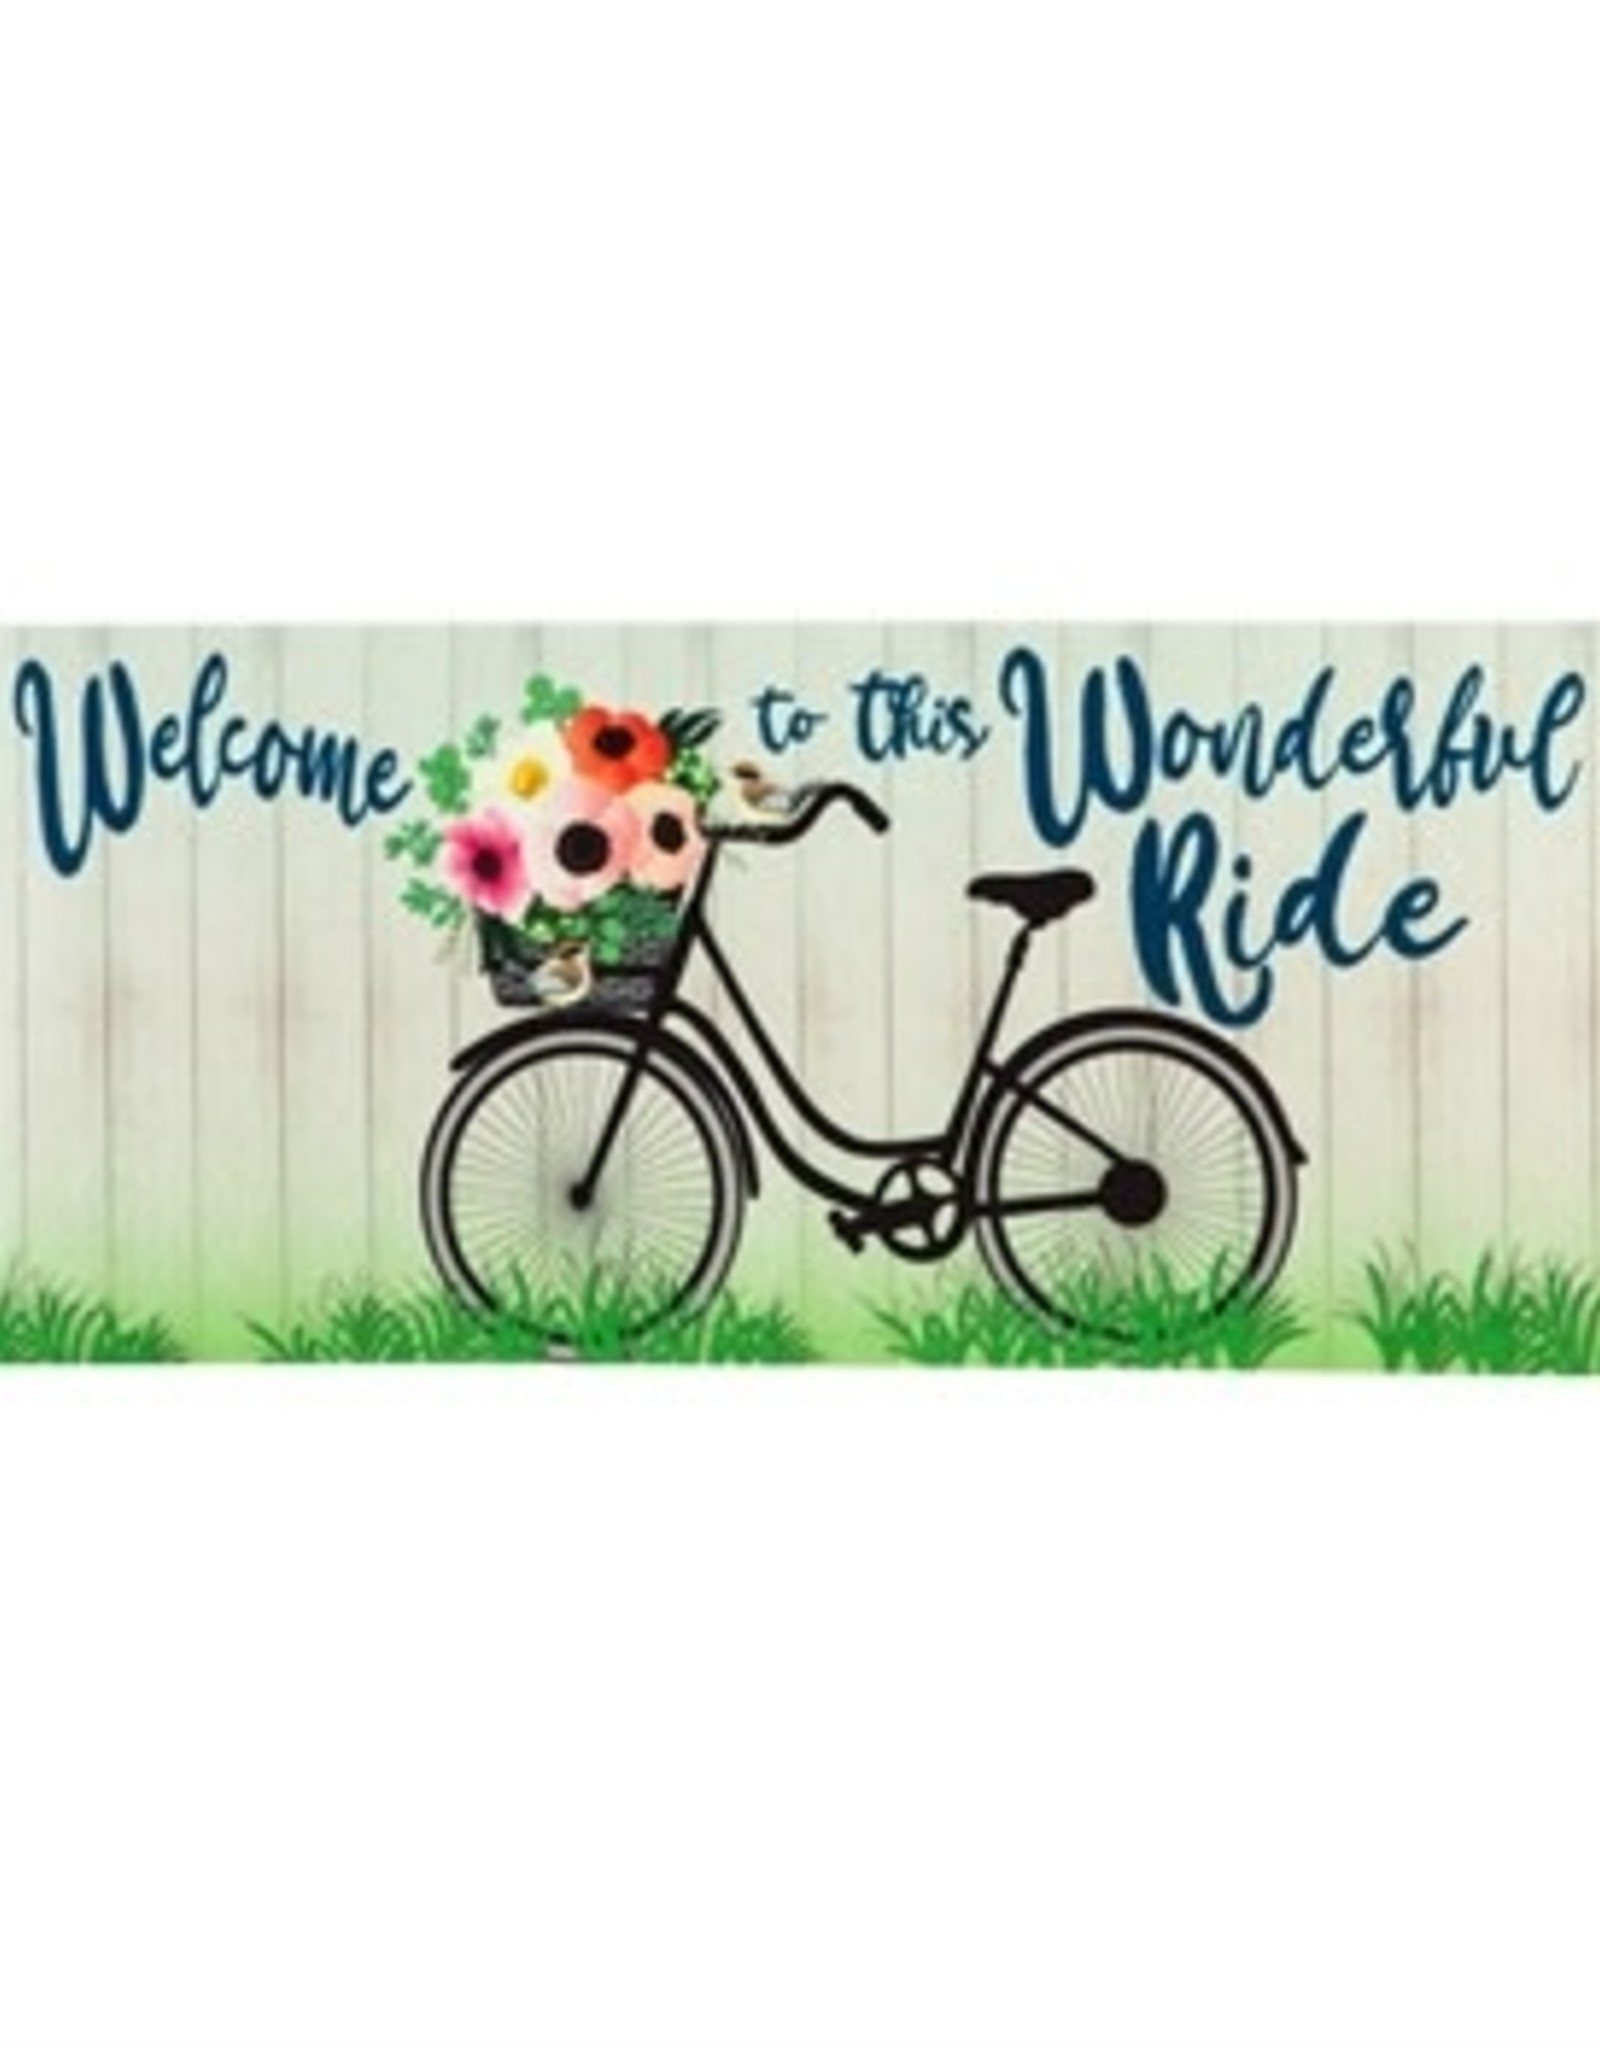 Wonderful Ride Switch Mat Insert